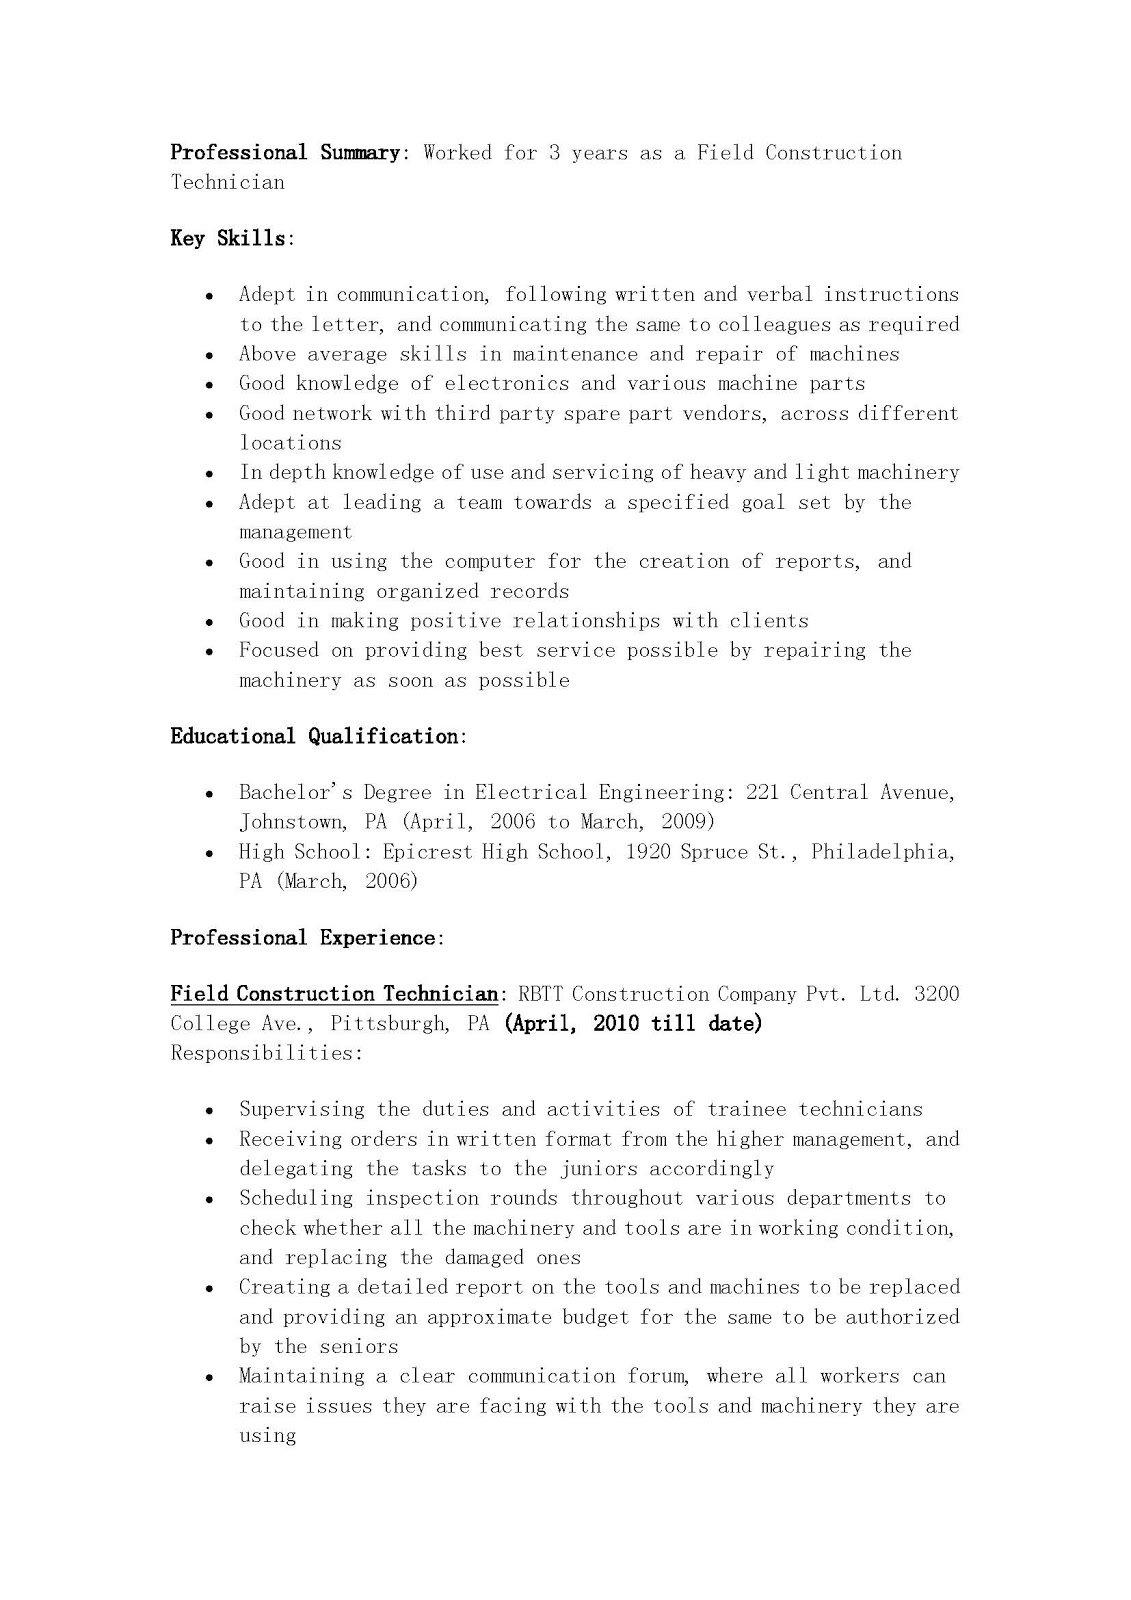 Accounting Technician Job Resume